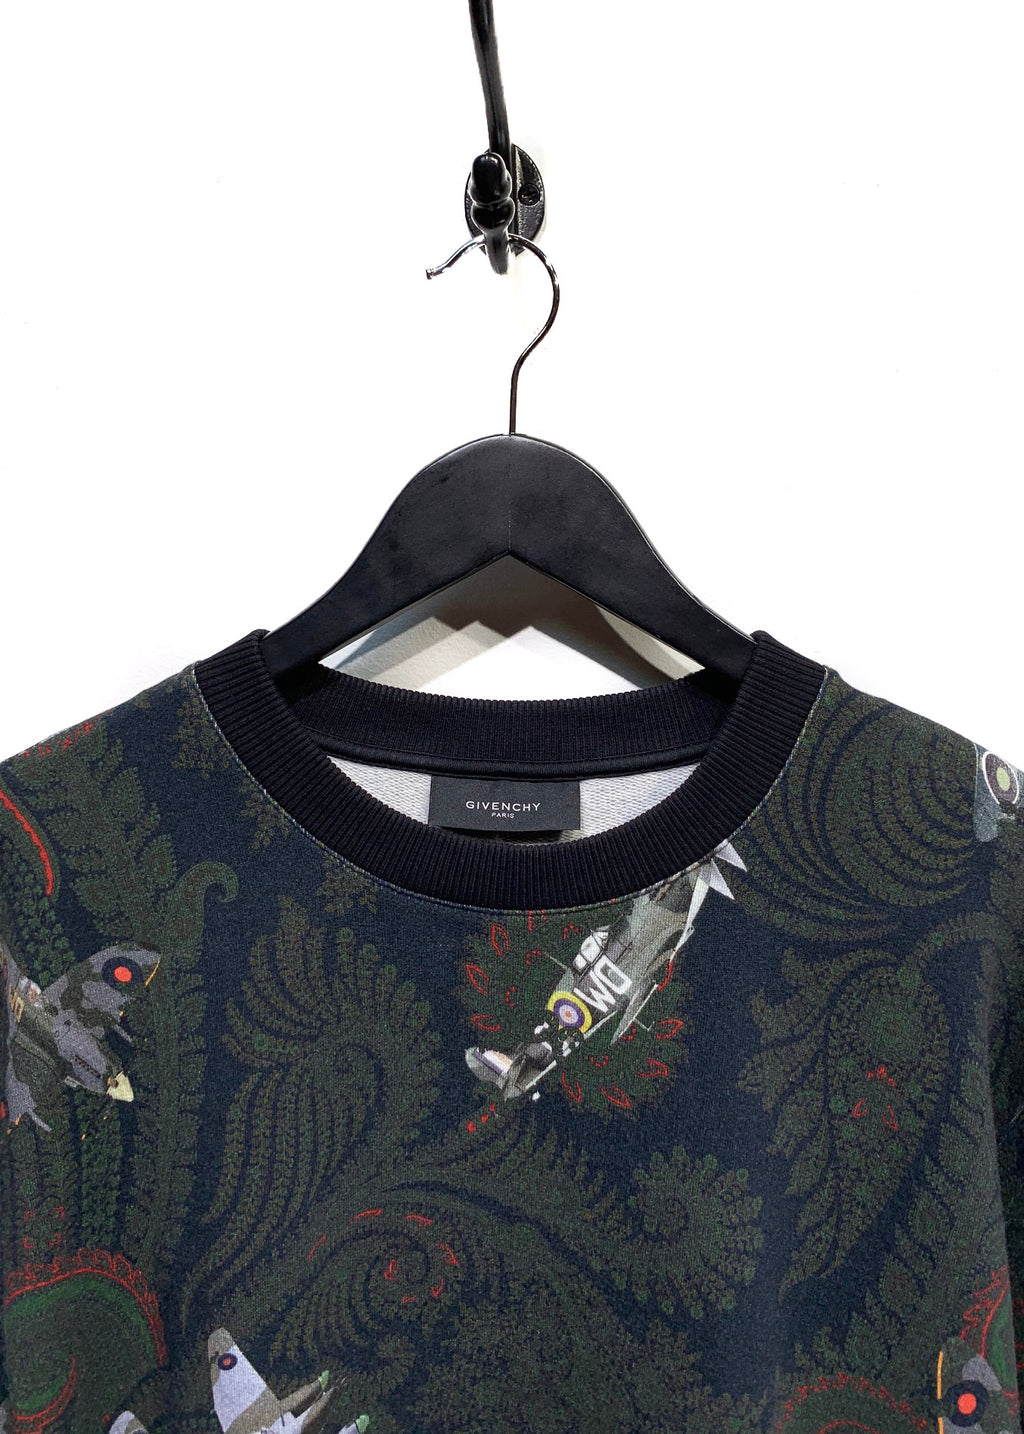 Givenchy Paisley And Planes Green Printed Sweatshirt